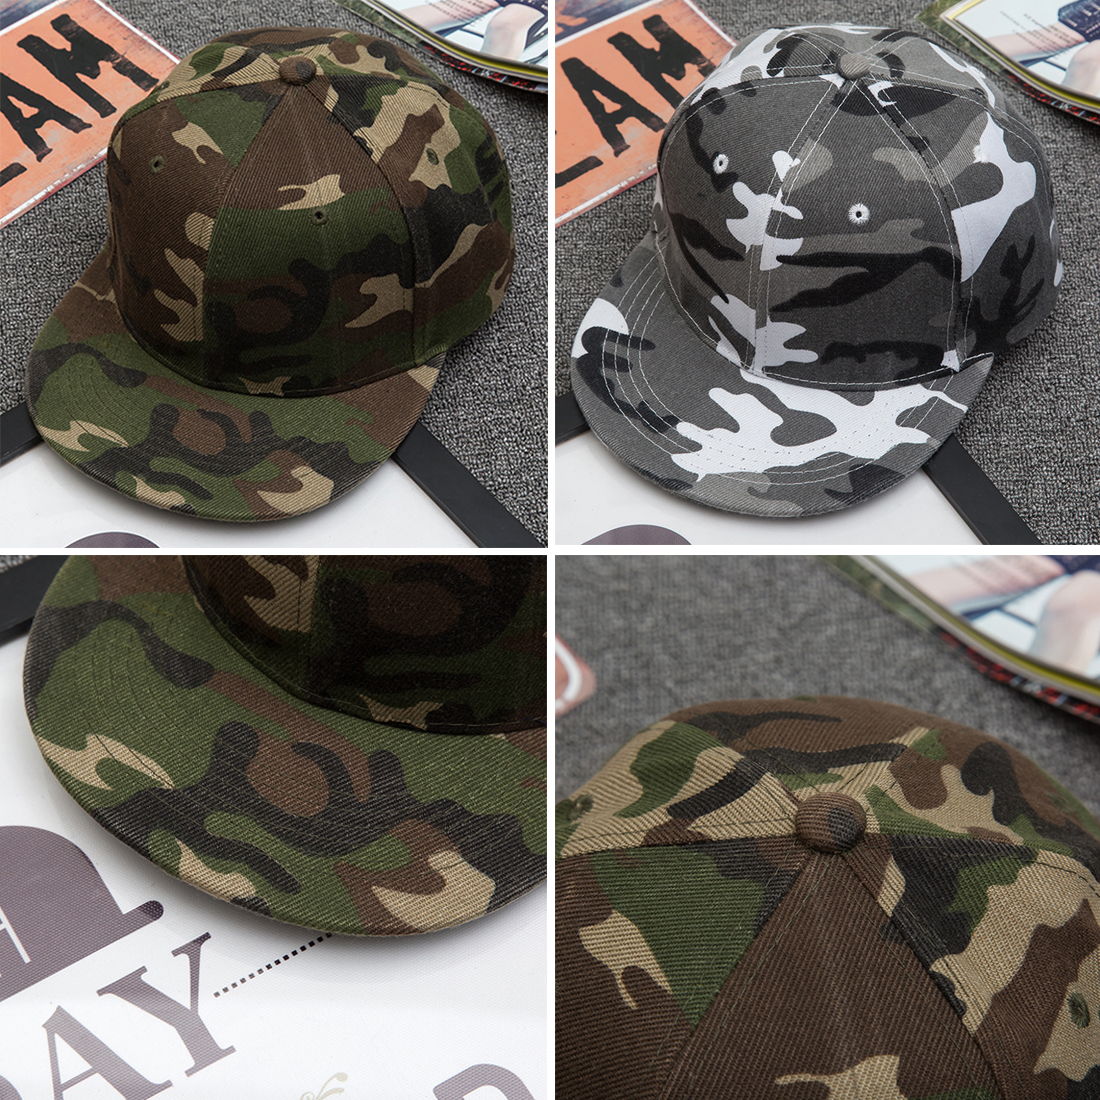 d418a4f980d Panel Cap Camo Snapback Hats For Men Women Cotton Camo Baseball Cap Outdoor  Army Camouflage Hat-in Baseball Caps from Apparel Accessories on  Aliexpress.com ...